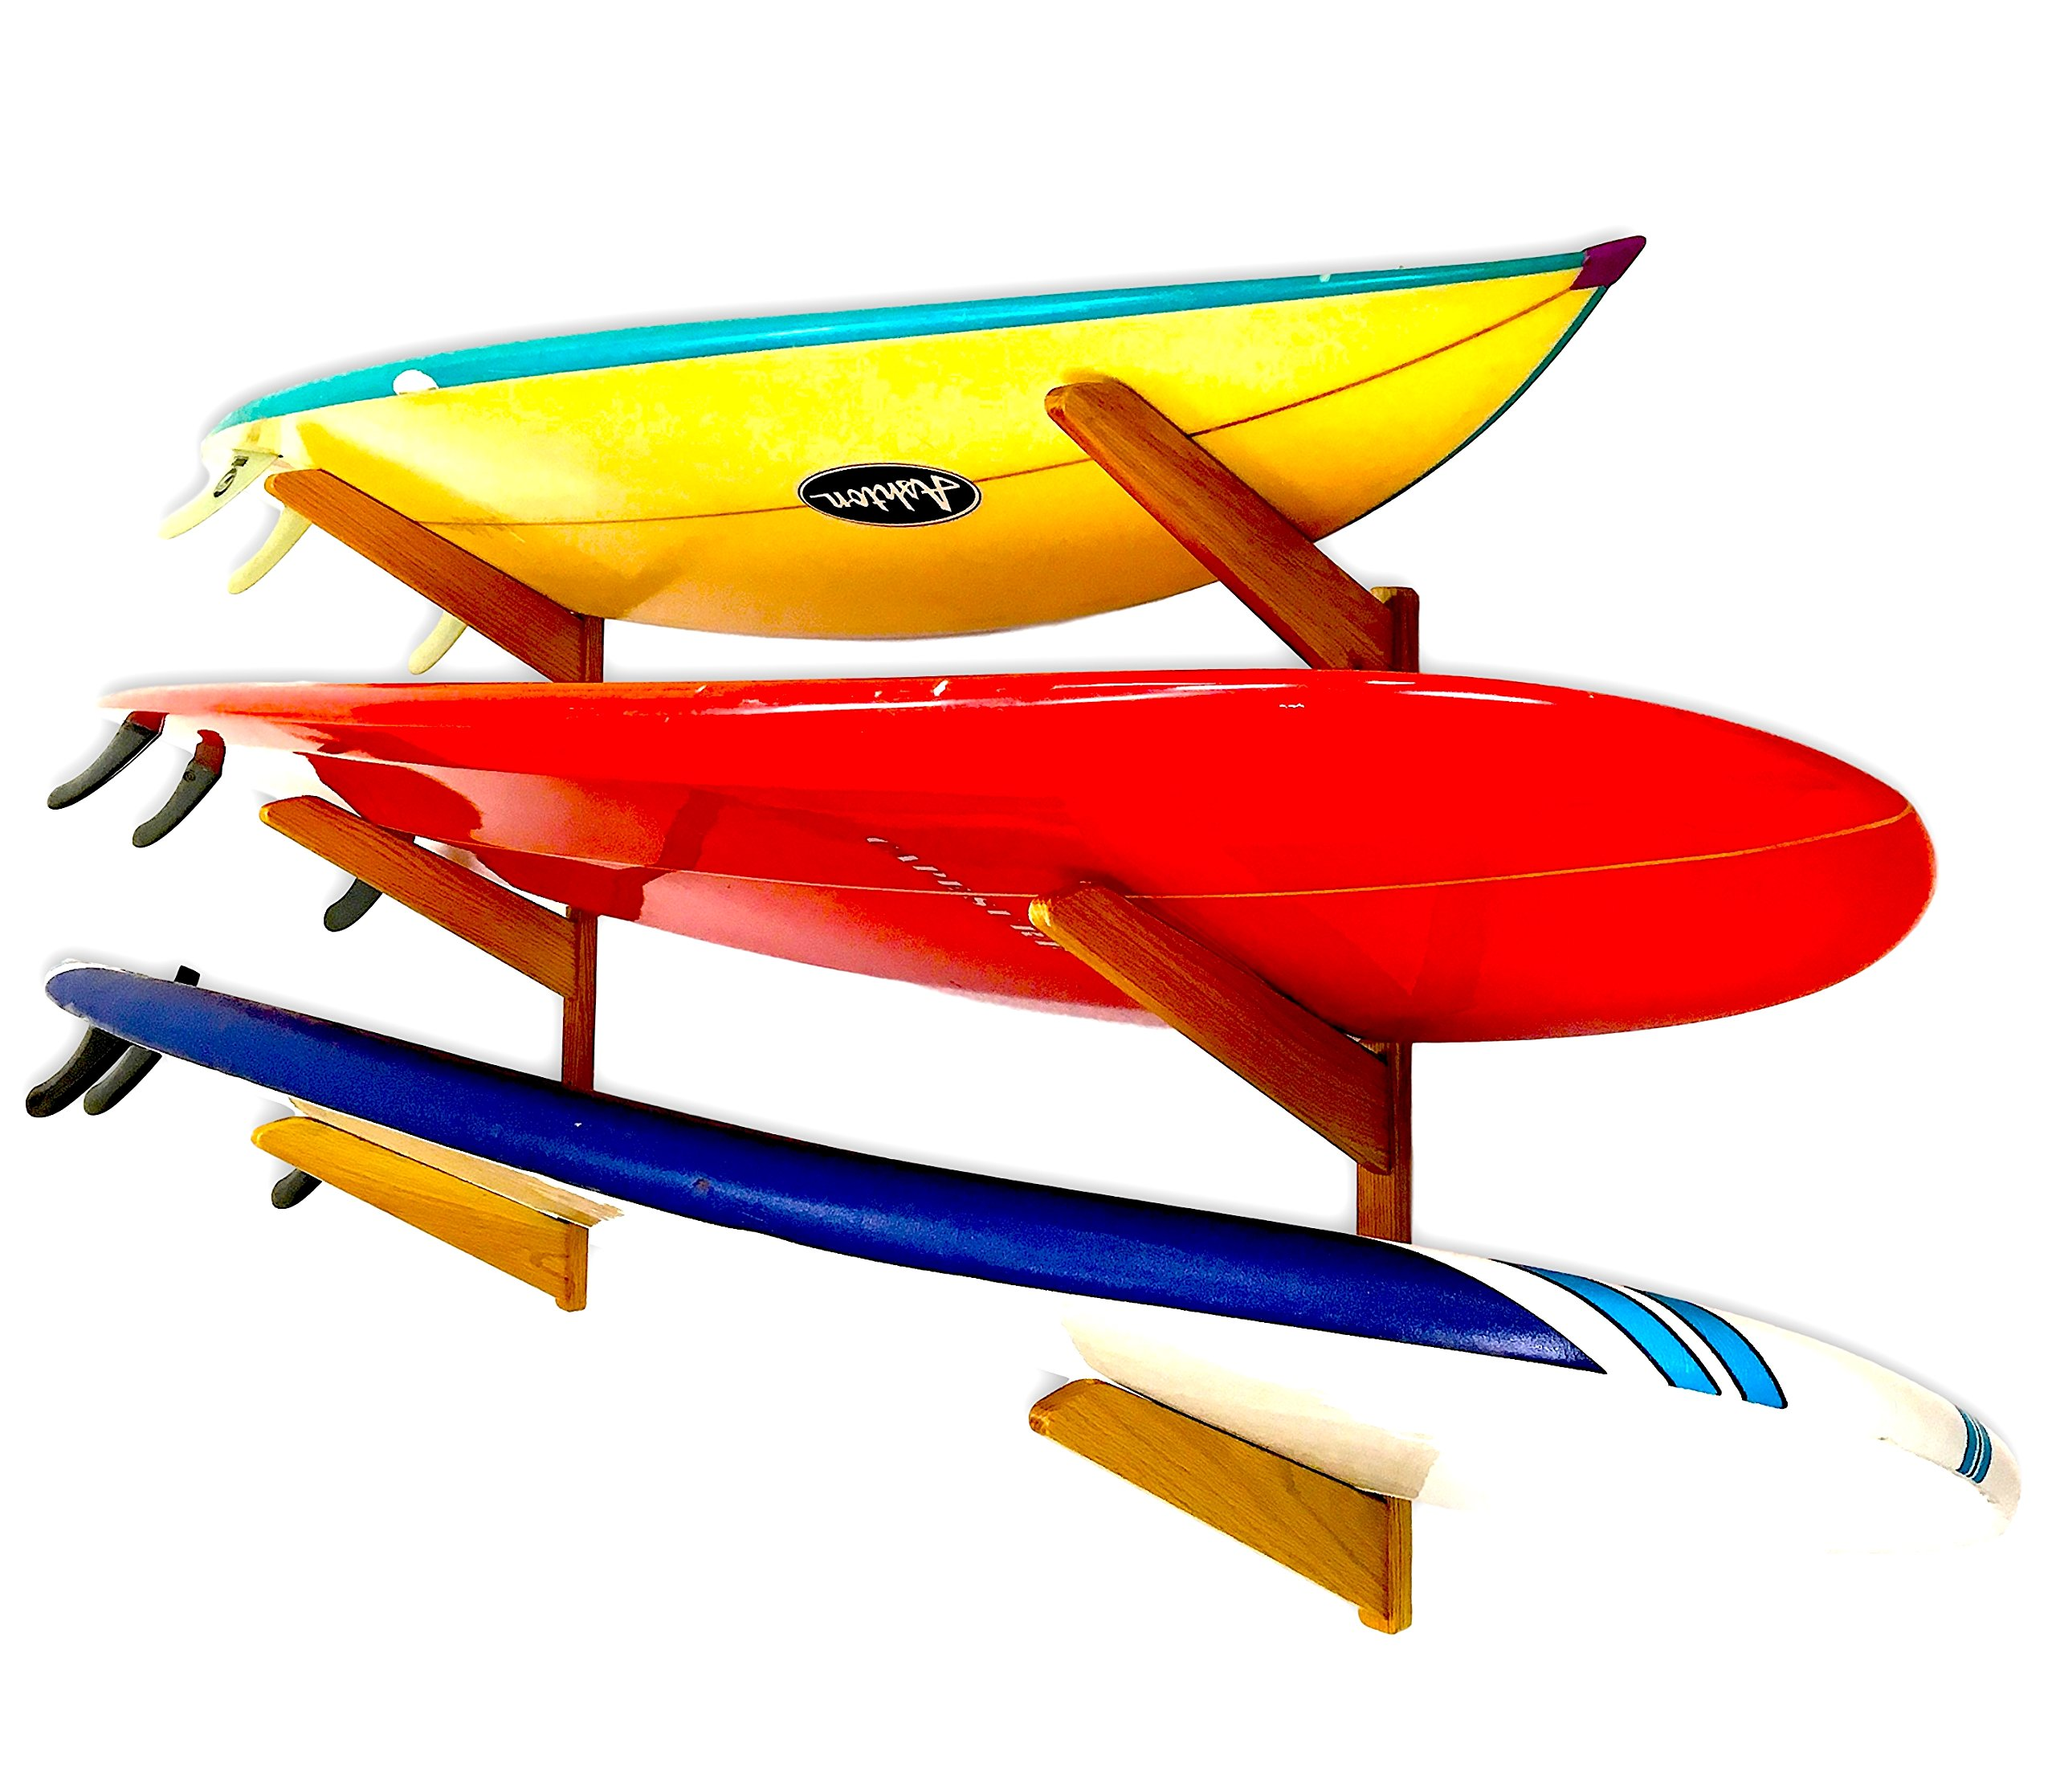 StoreYourBoard Timber Surfboard Wall Rack, Holds 3 Surfboards, Wood Home Storage Mount System, Natural by StoreYourBoard